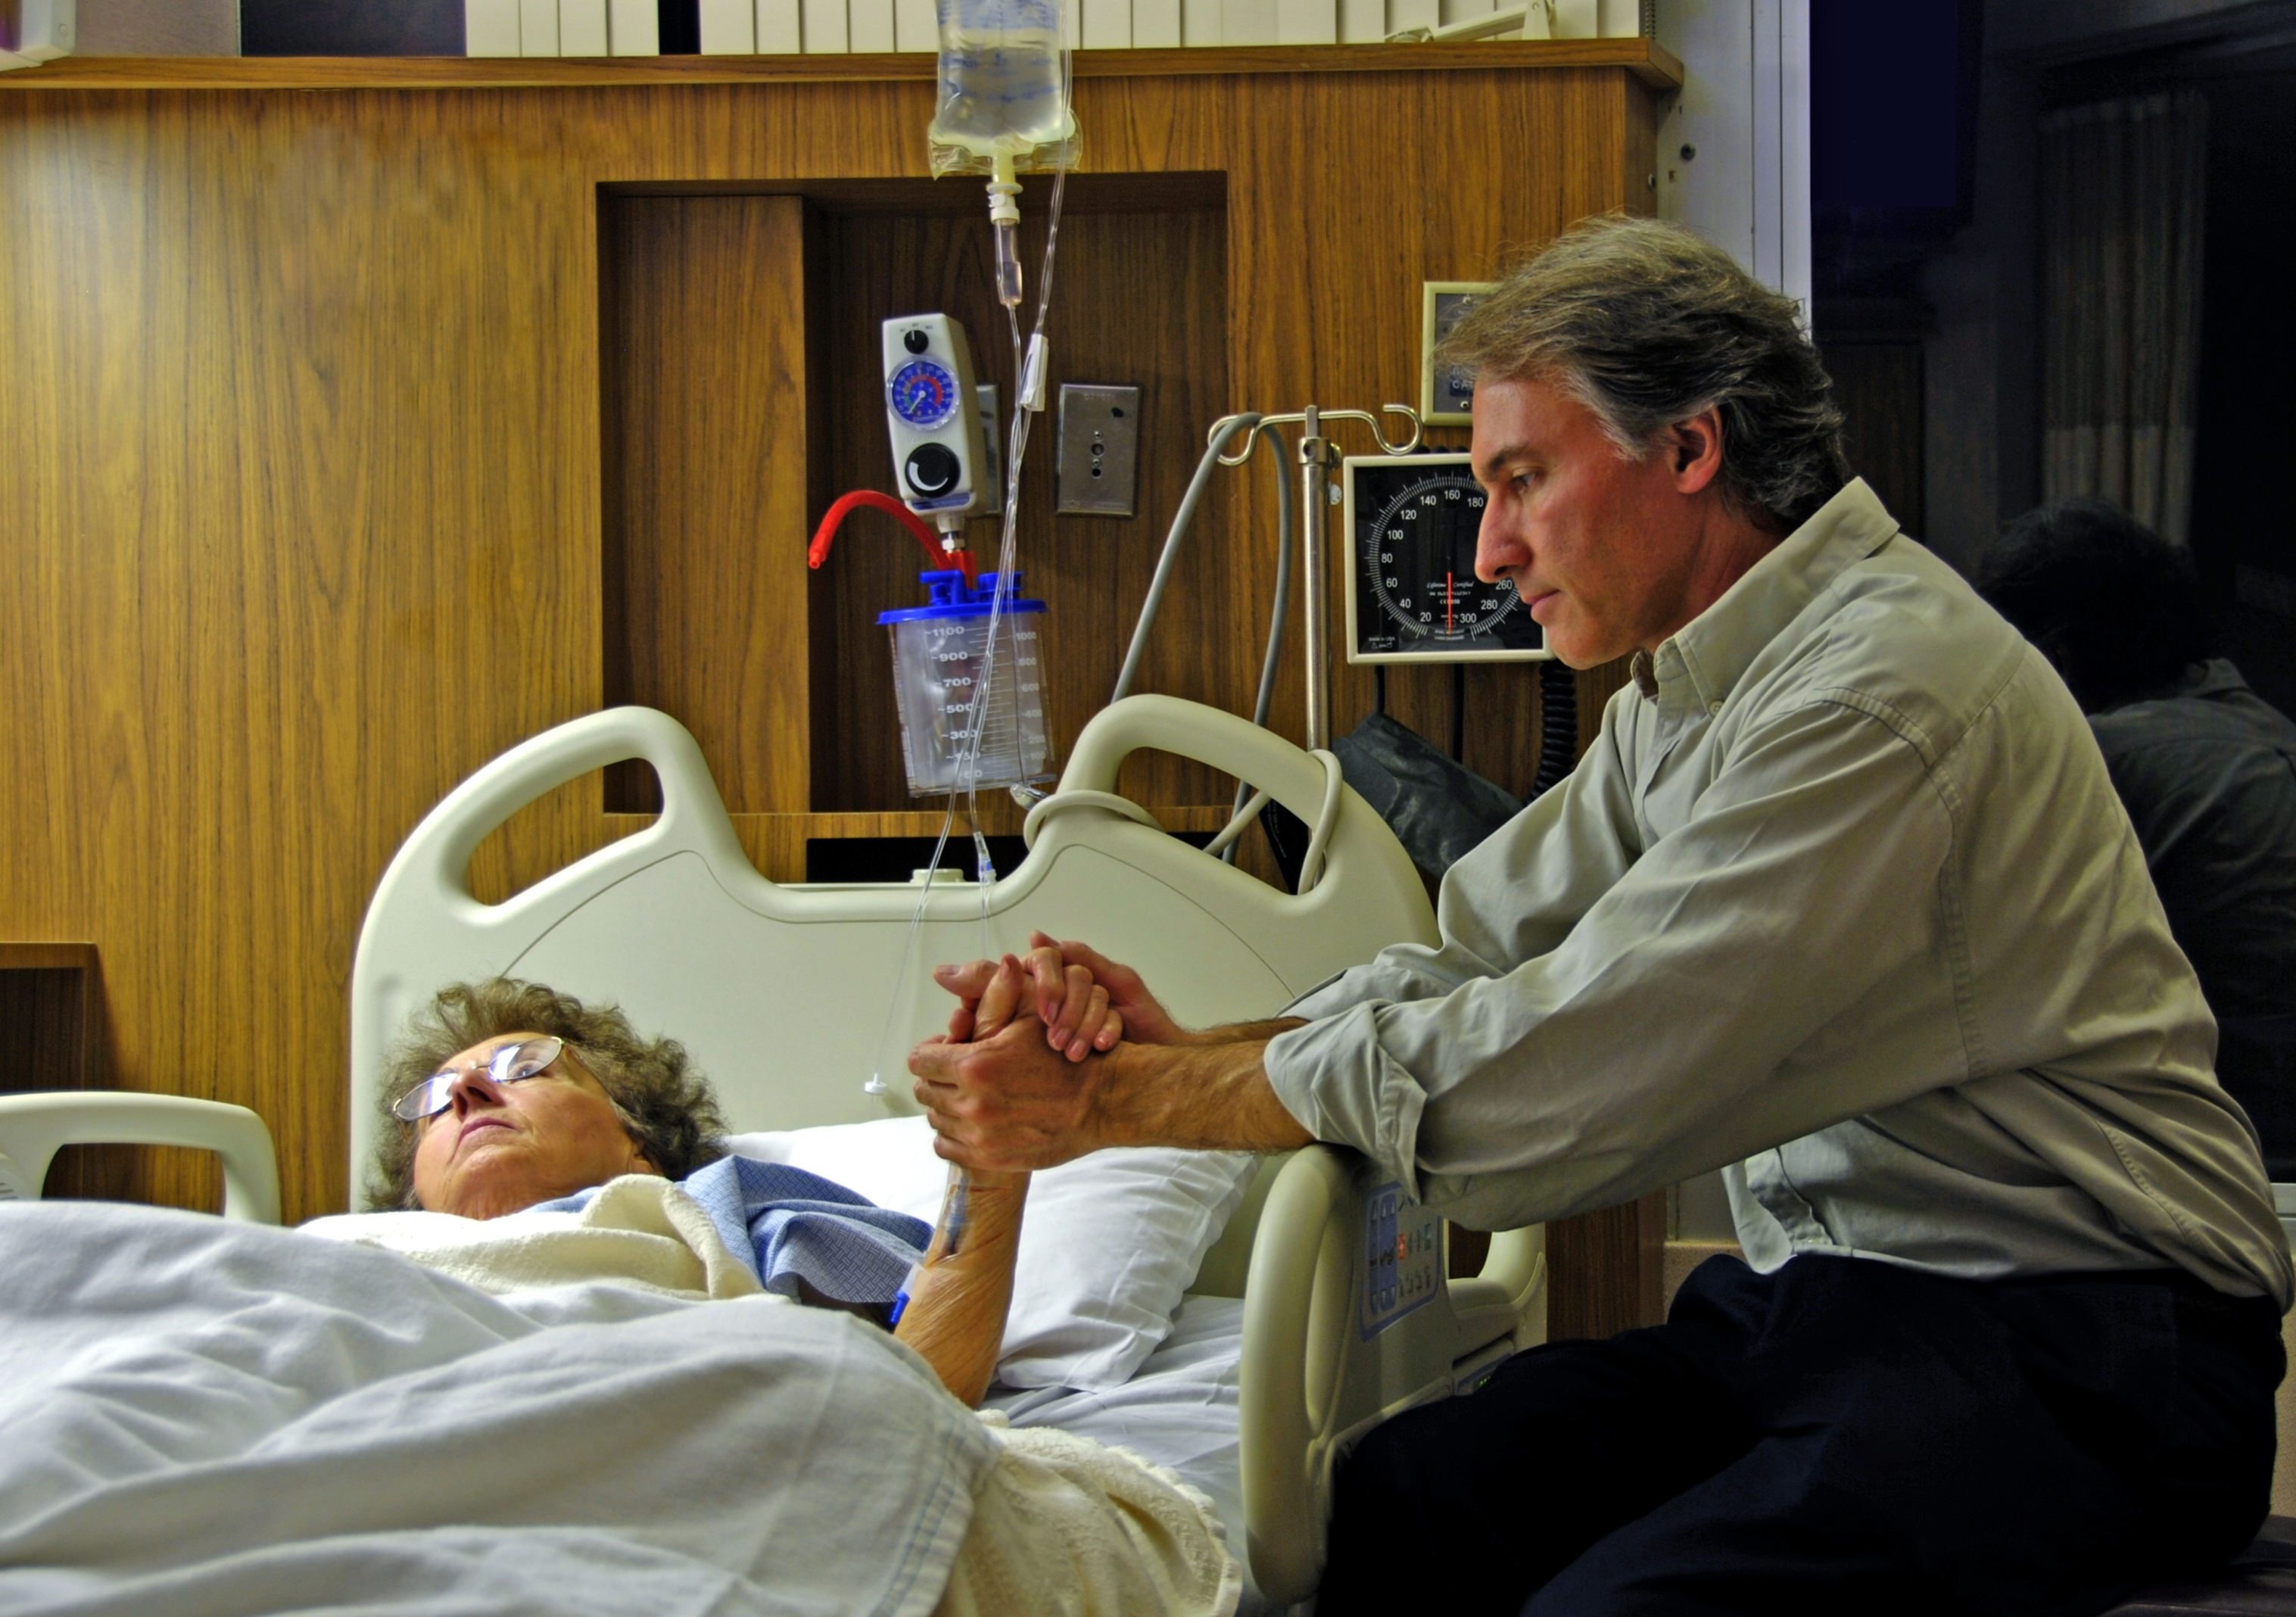 Patients say that talking about how medical malpractice affects them and their families is vitally important. Photo: Shutterstock